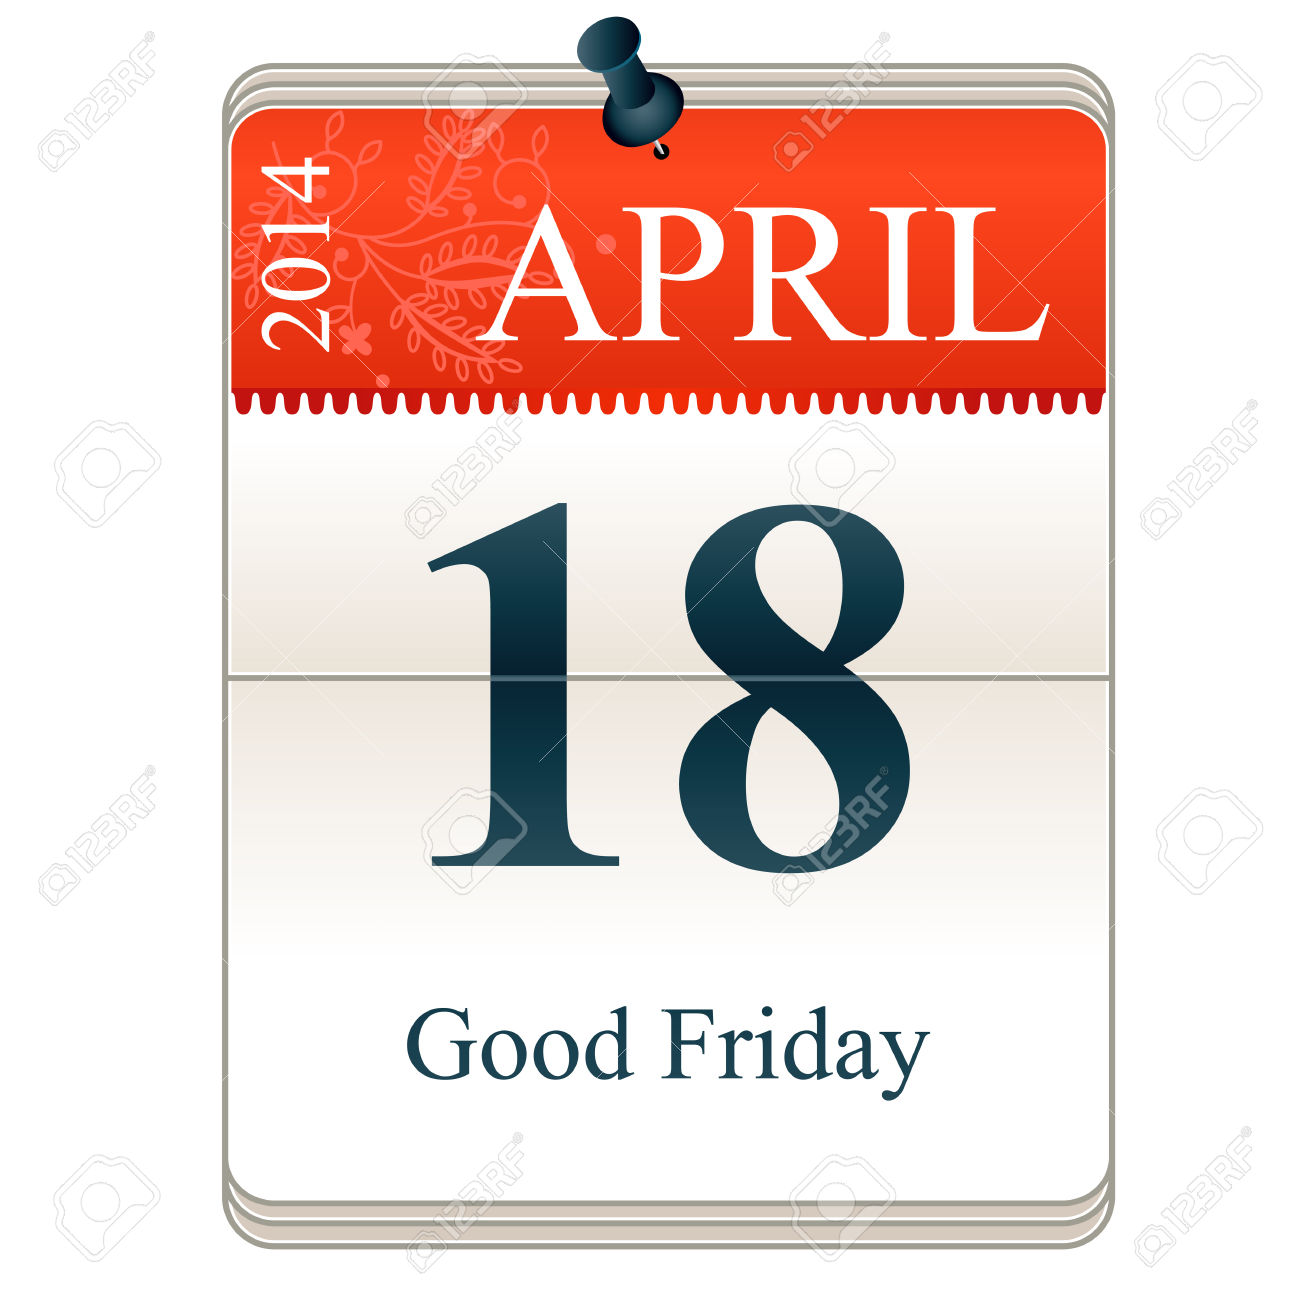 April 2014 calendar clipart clipart royalty free stock Calendar Of Good Friday, 18th April, 2014 Royalty Free Cliparts ... clipart royalty free stock